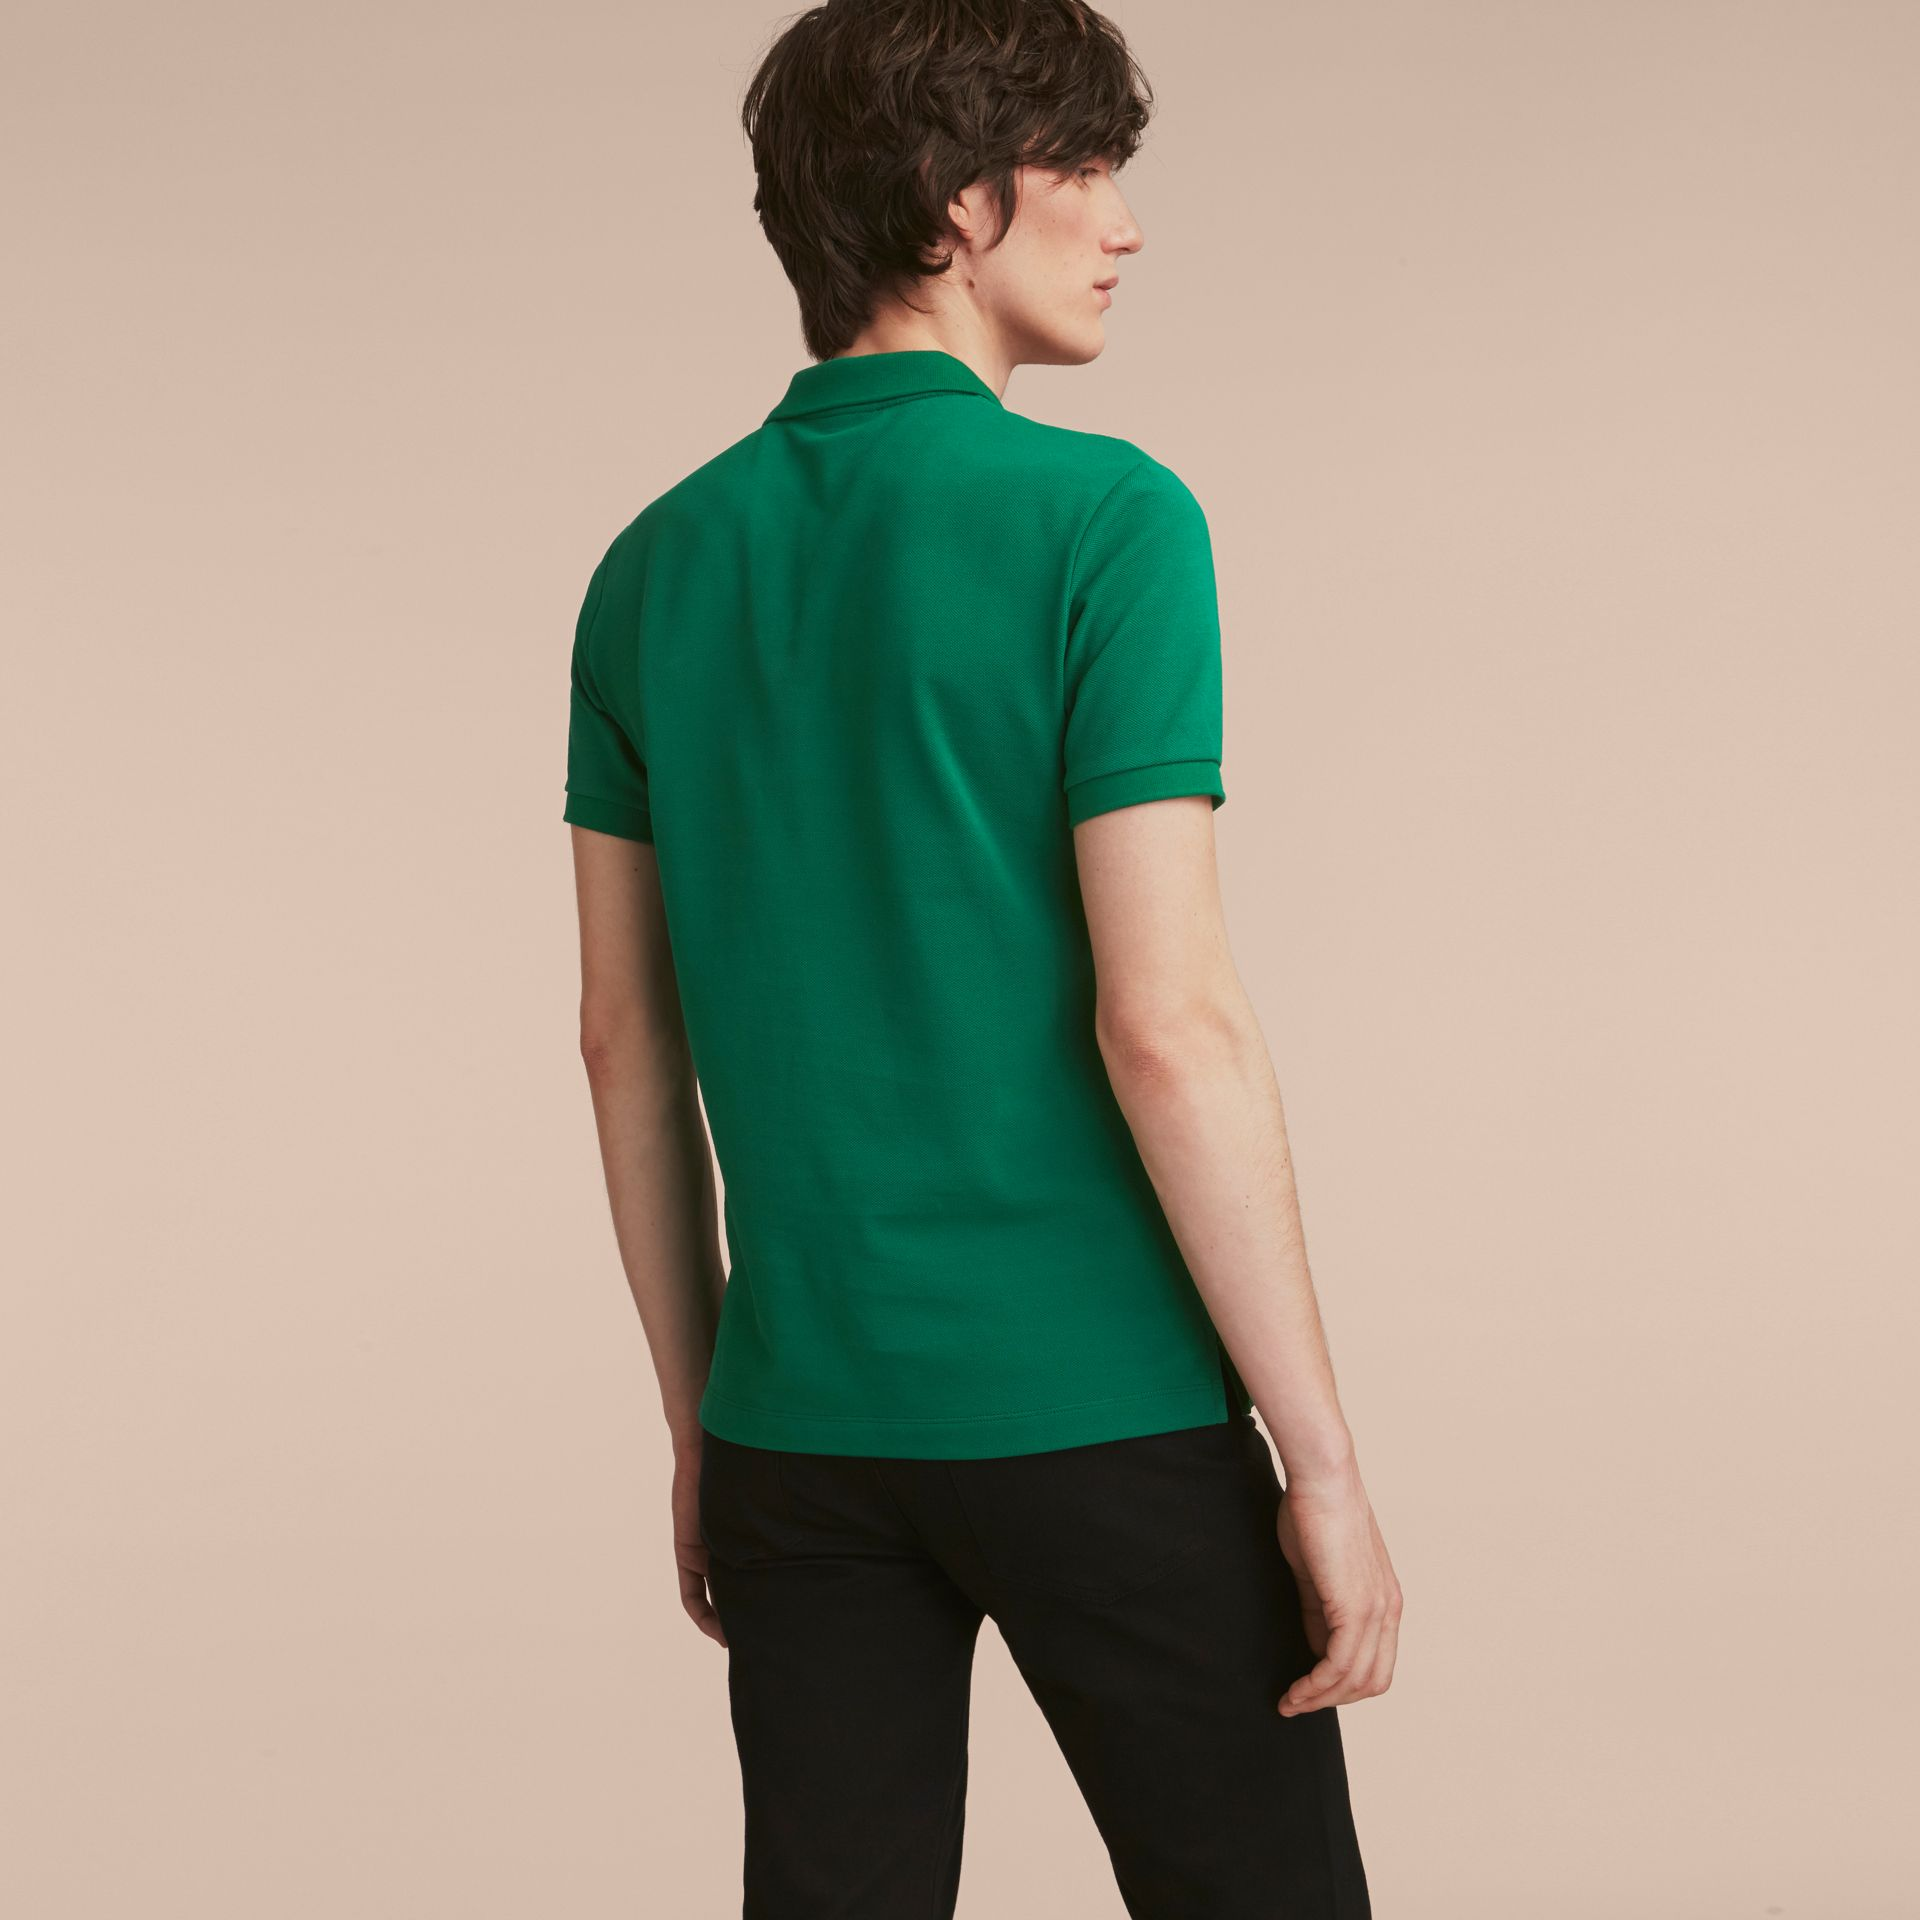 Geometric Motif Cotton Piqué Polo Shirt with Check Placket Bright Bottle Green - gallery image 3